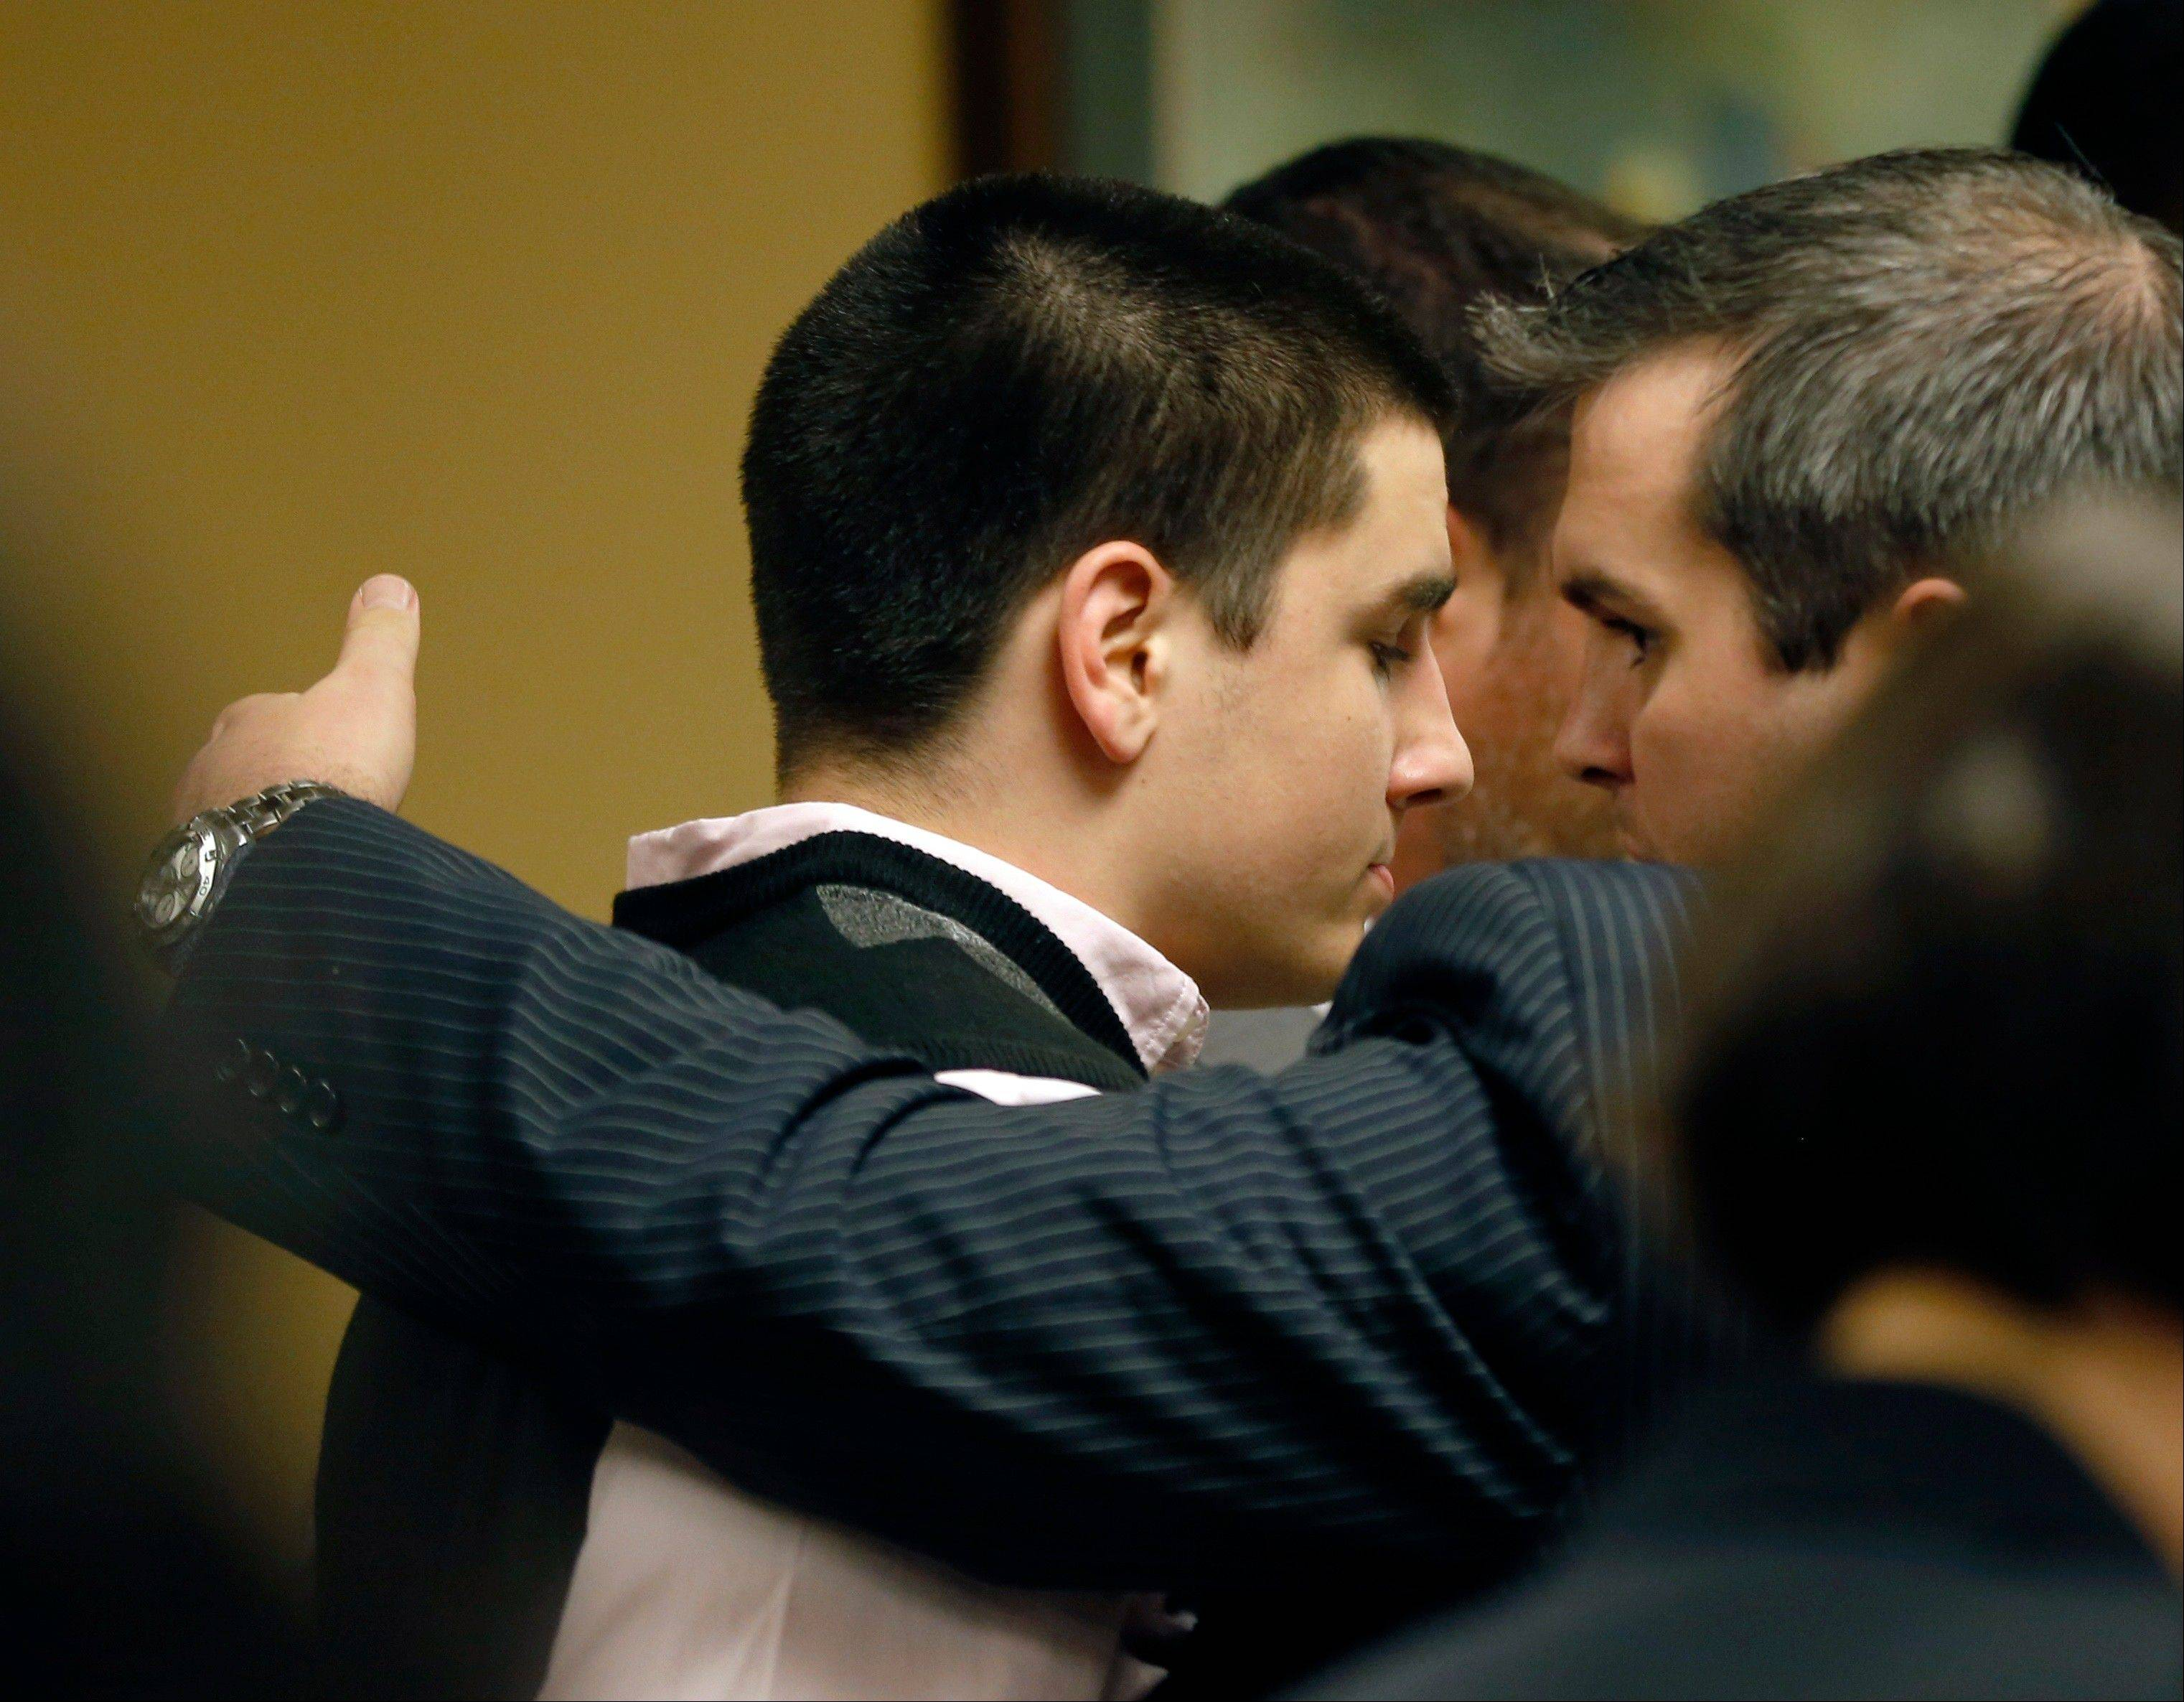 Trent Mays, 17, left, is hugged by one of his lawyers, Brian Duncan, after closing arguments in the juvenile trial for him and co-defendant Ma'lik Richmond, 16, on rape charge.